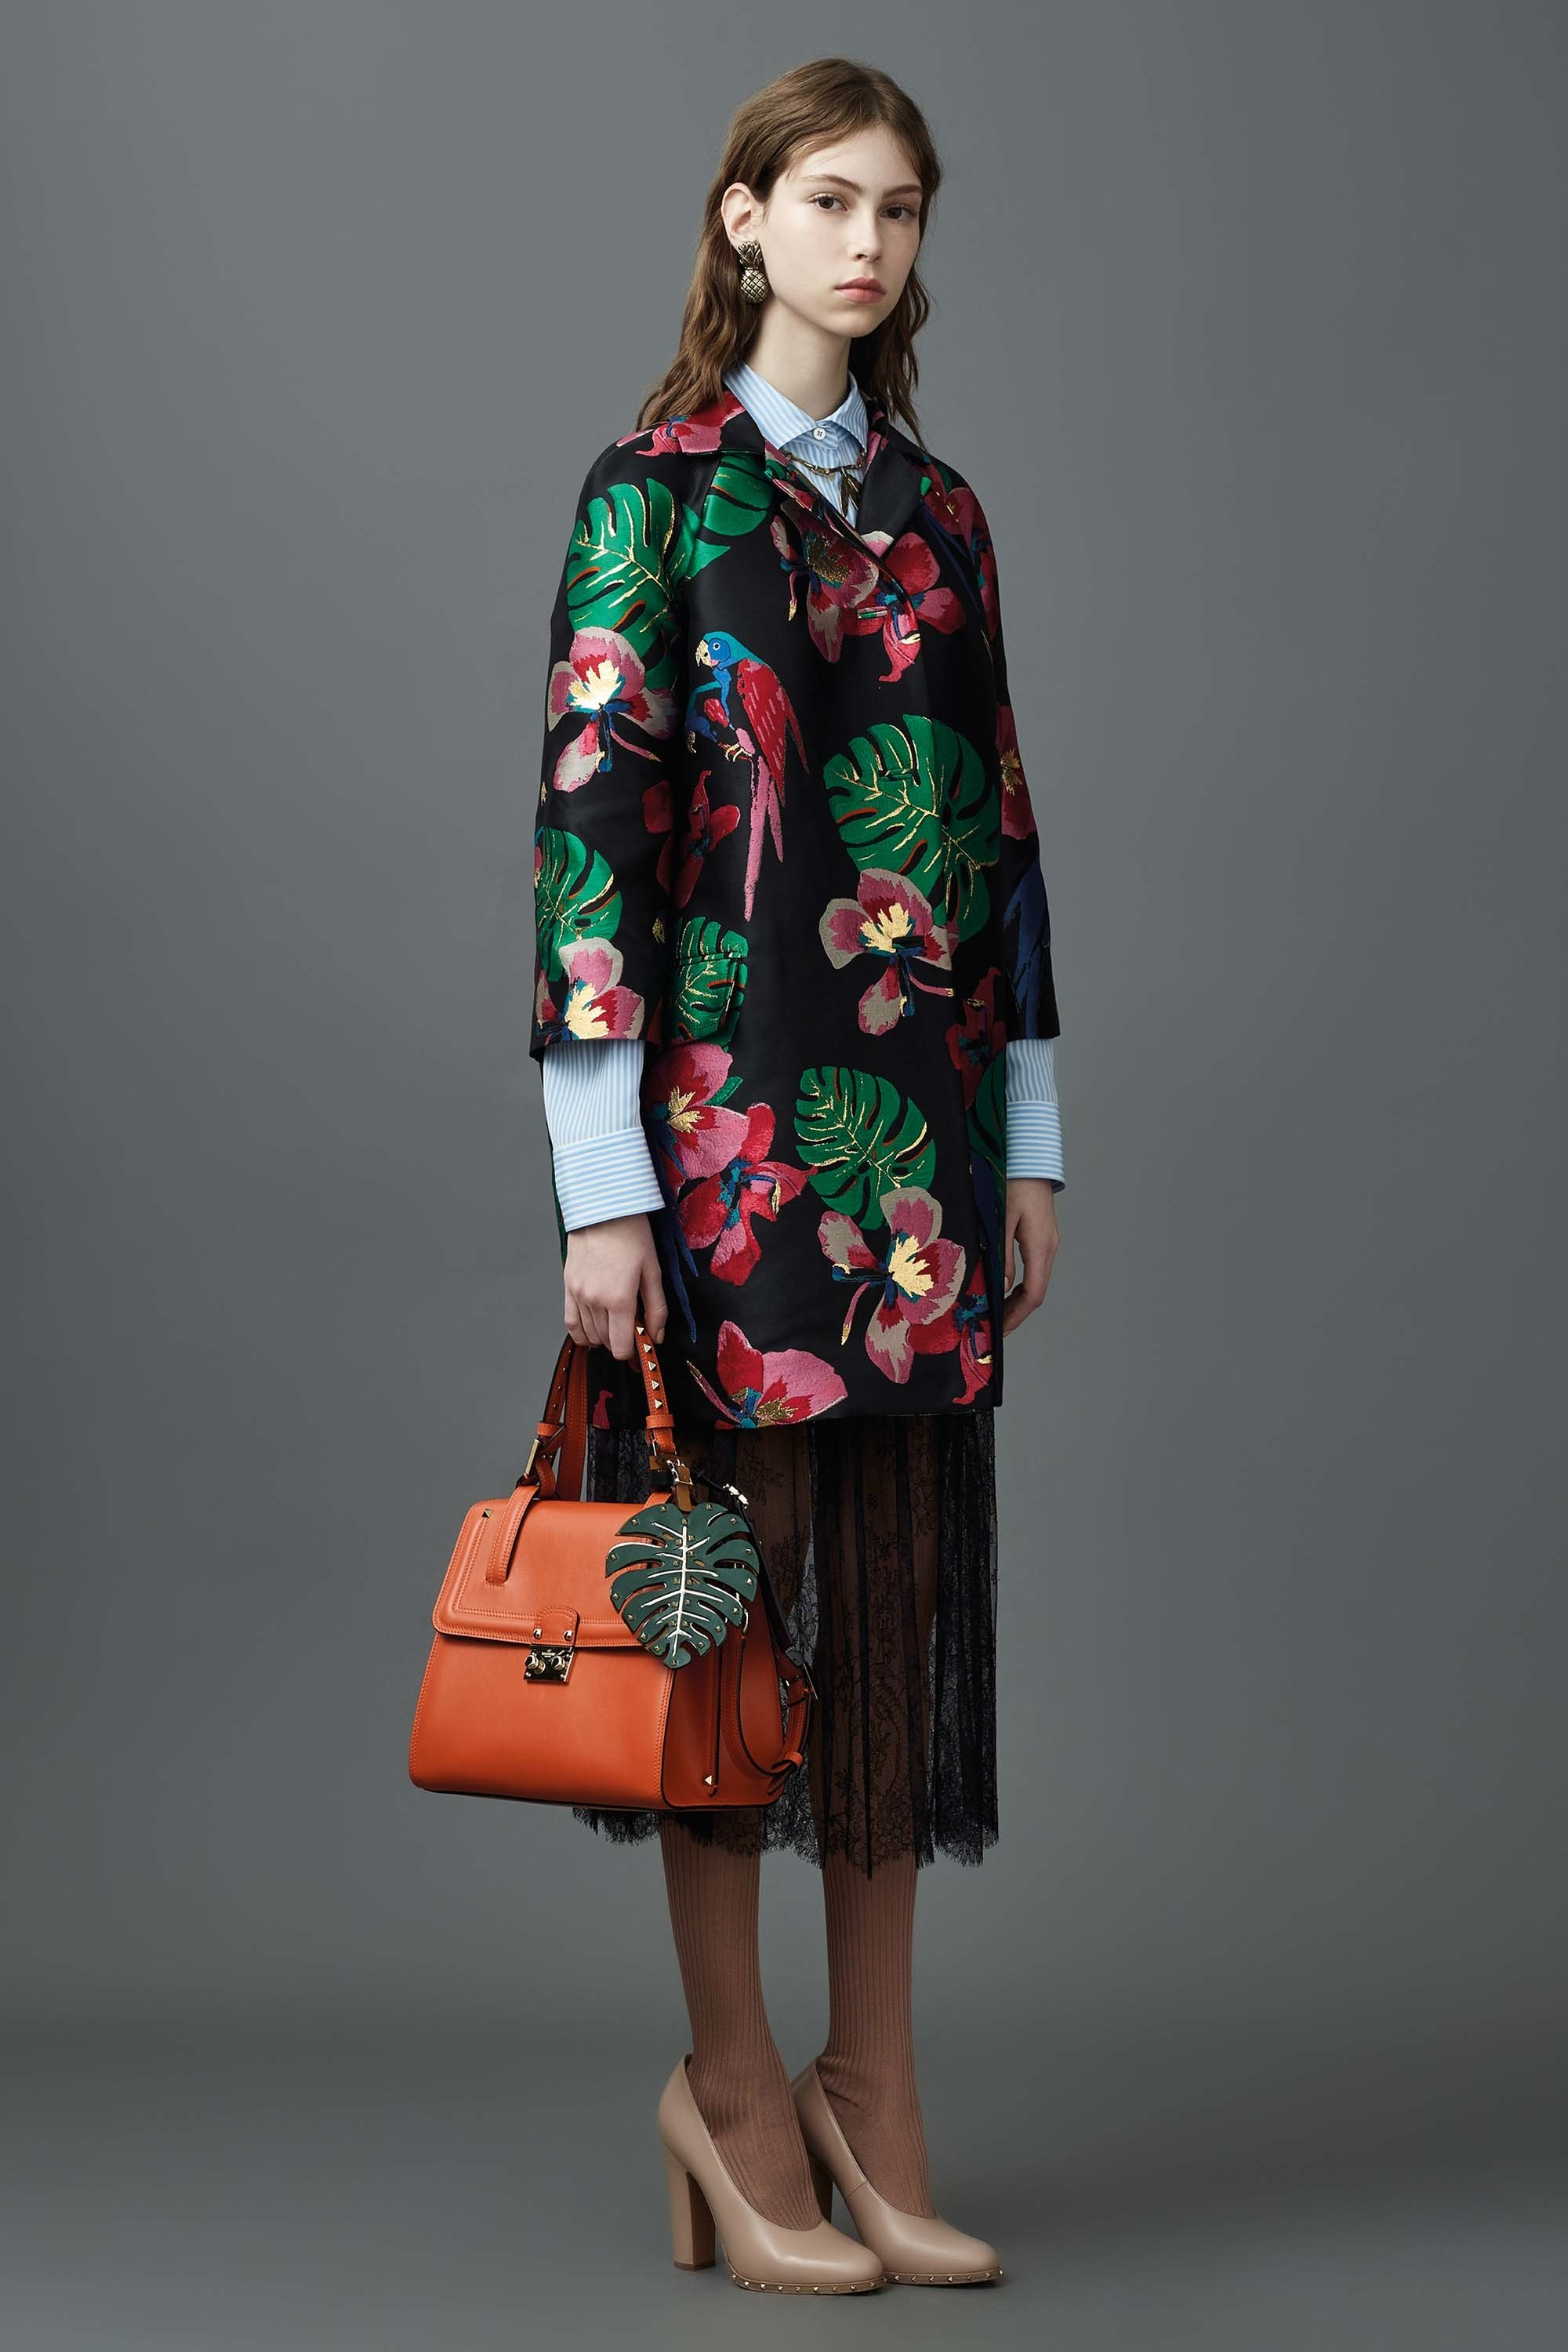 Watch - Resort Valentino bag collection pictures video